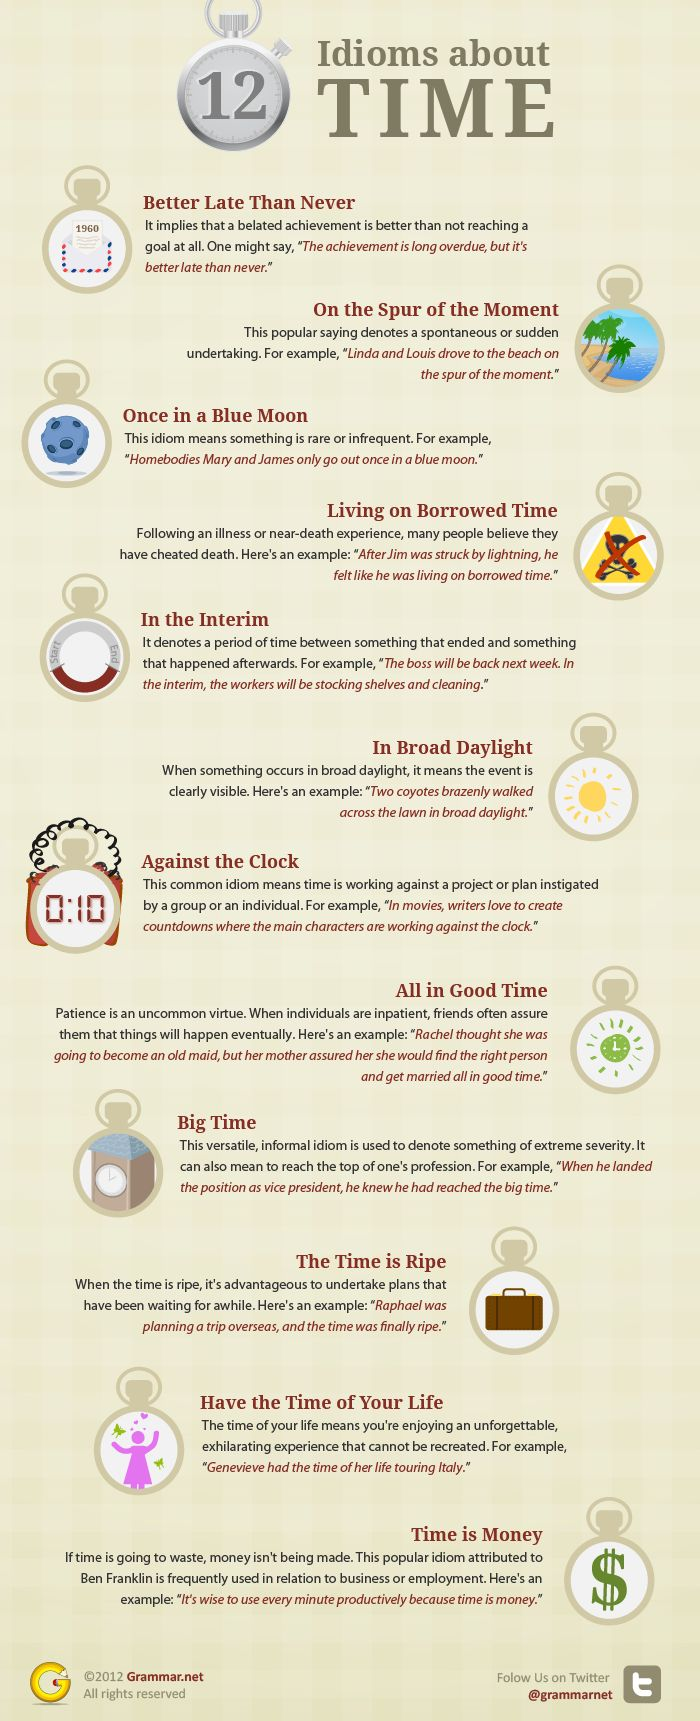 12 Popular #idioms in English about TIME. Sure, time is money and you should seek to have the time of you life. Here are some more time-related idioms that you should know.